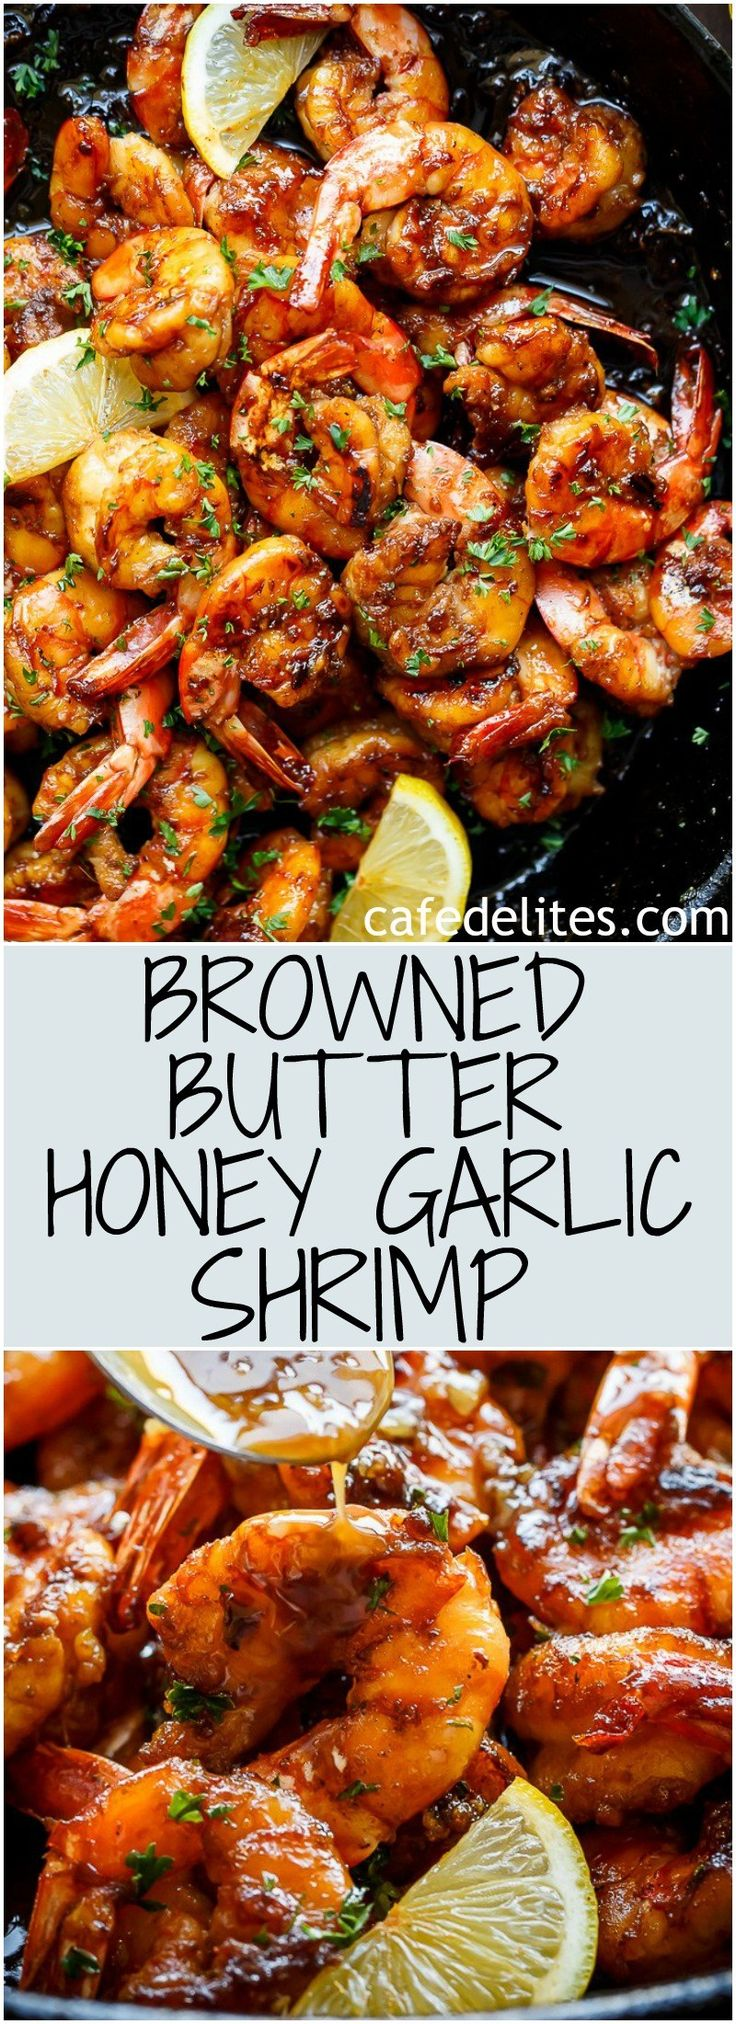 Browned Butter Honey Garlic Shrimp feels like a gourmet shrimp meal, with half of the effort, maximum taste and all in less than 15 minutes!   https://cafedelites.com